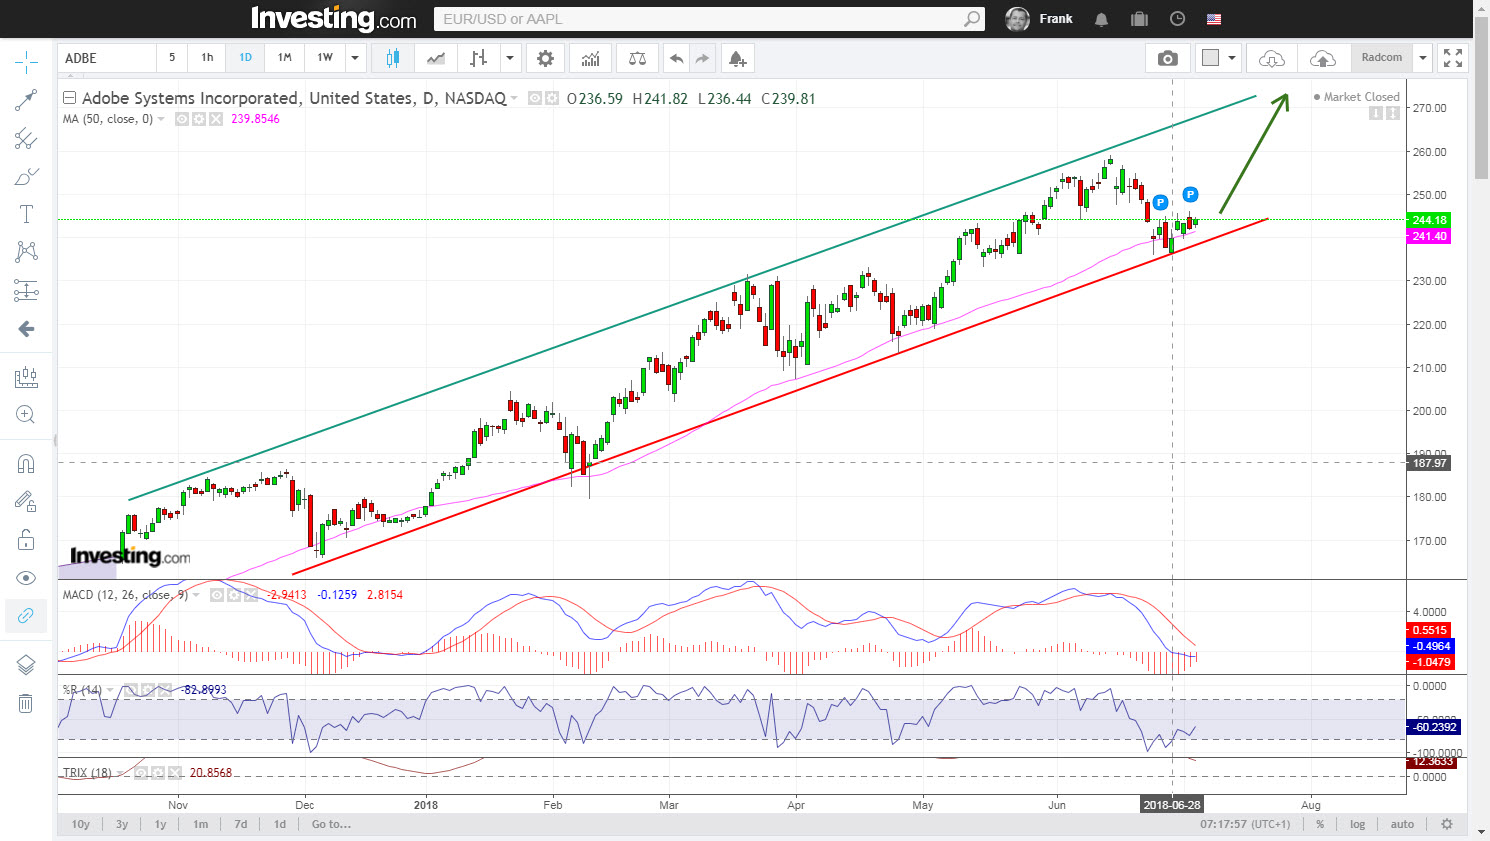 Adobe buy signal support line